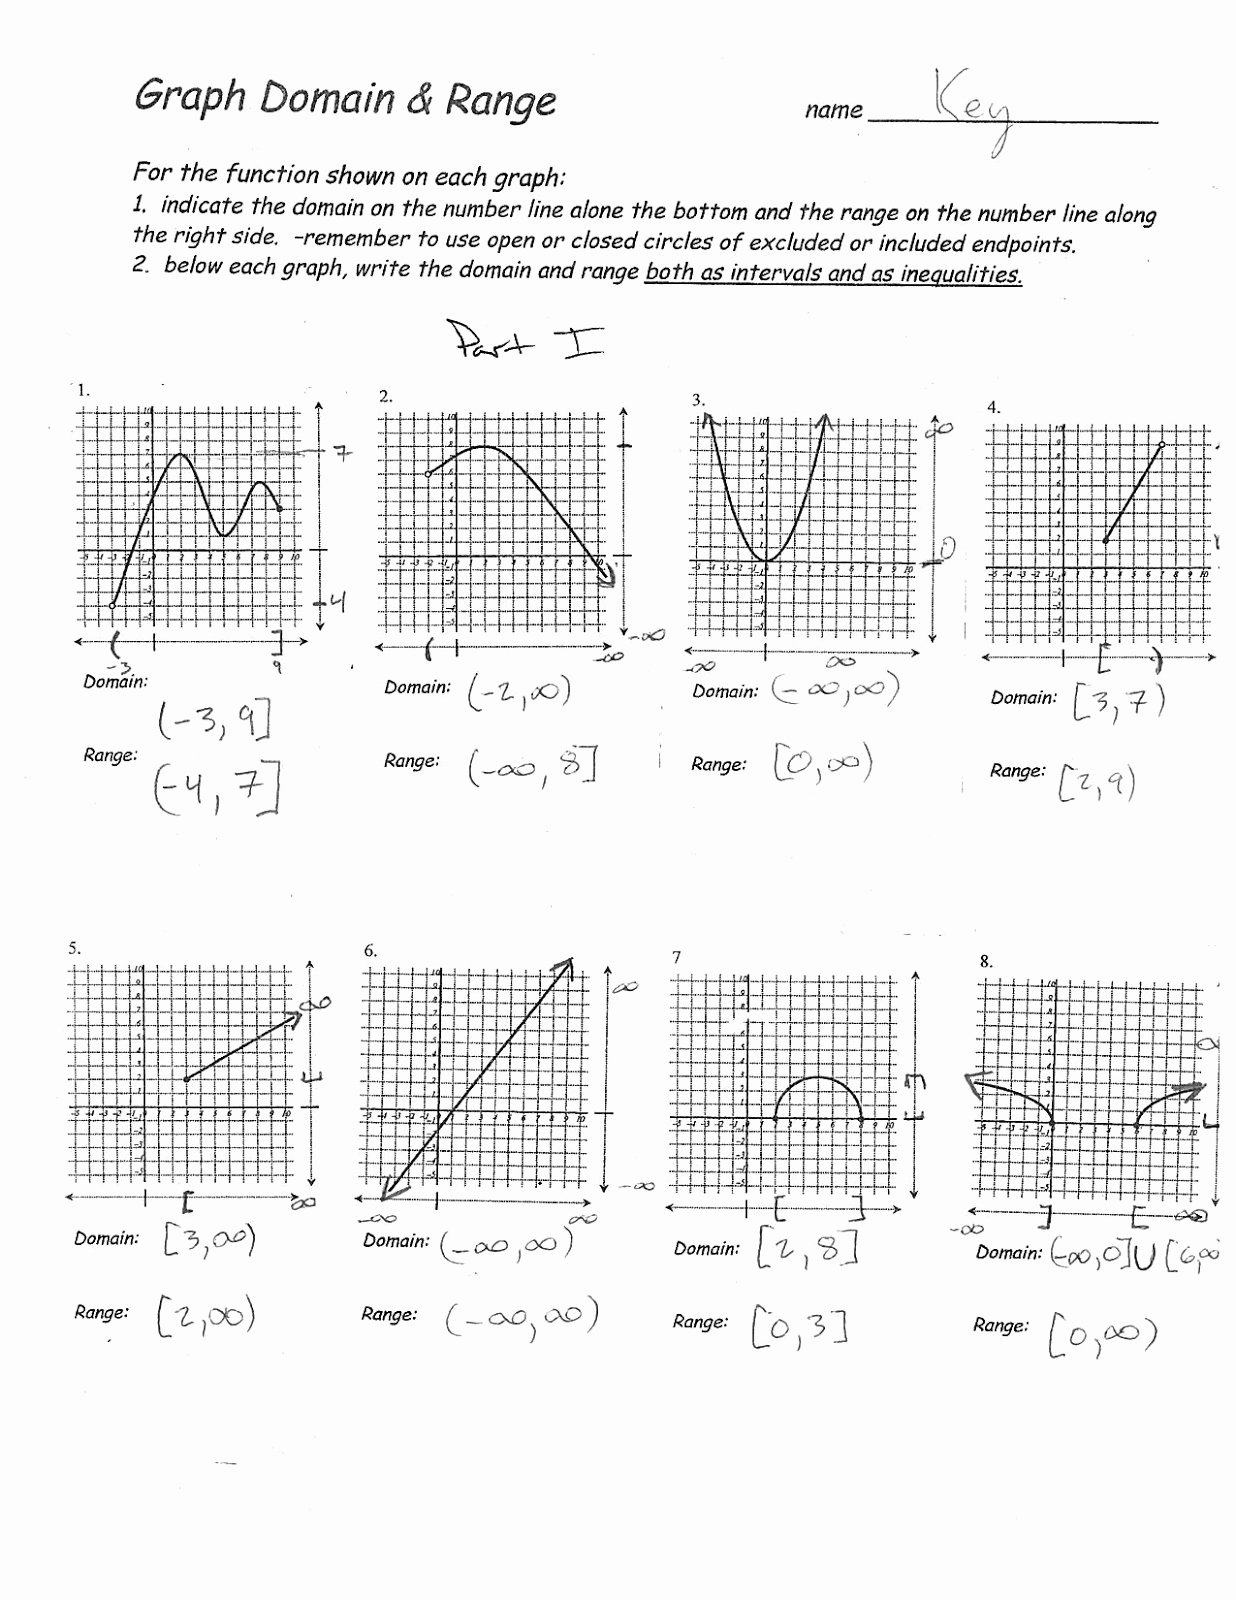 Domain and Range Graph Worksheet with Answers Luxury Mr Suominen S Math Homepage College Mathematics 11 29 12